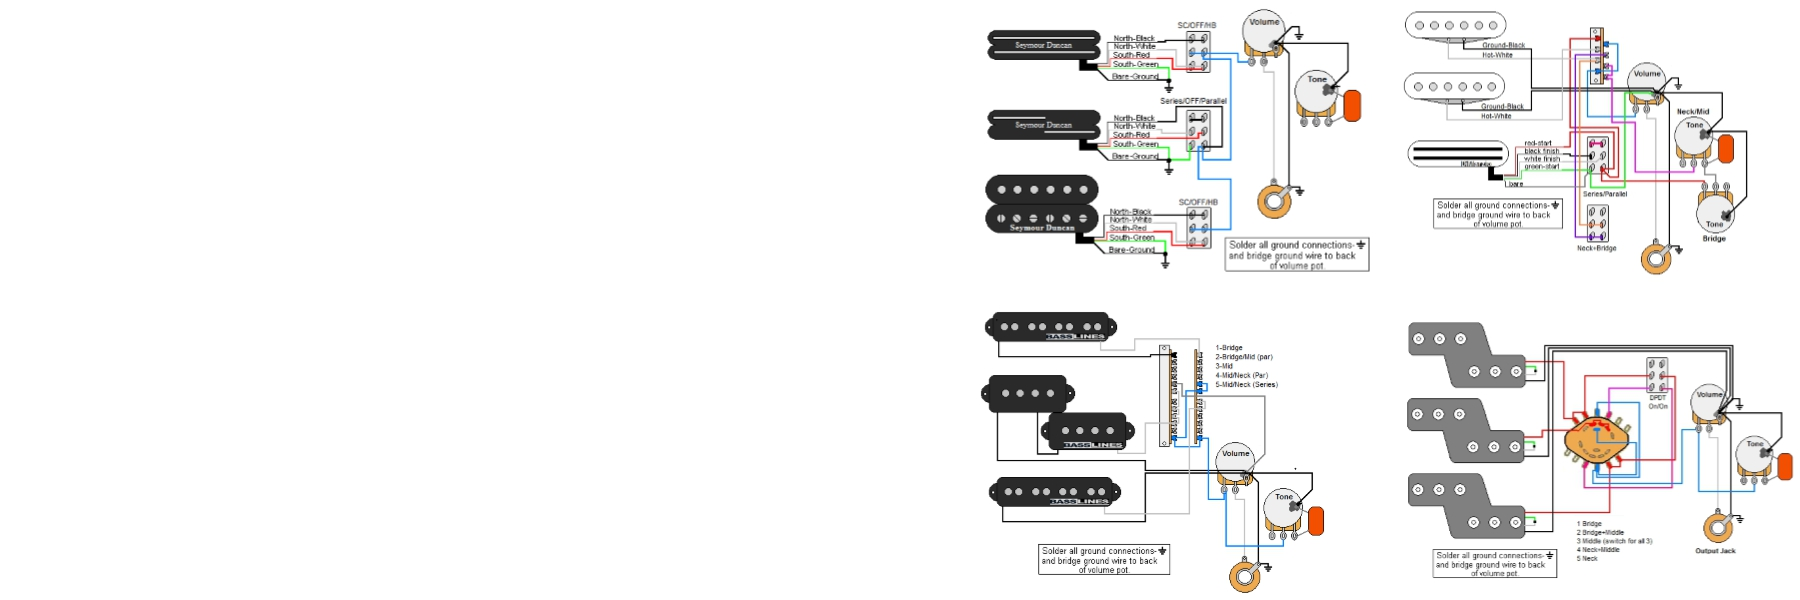 Guitar Wiring Parts Everything About Diagram Harness Pickup 1v2t 5 Way Switch 500k Pots For Fender Strat Electronics Diagrams Guitarelectronics Com Rh